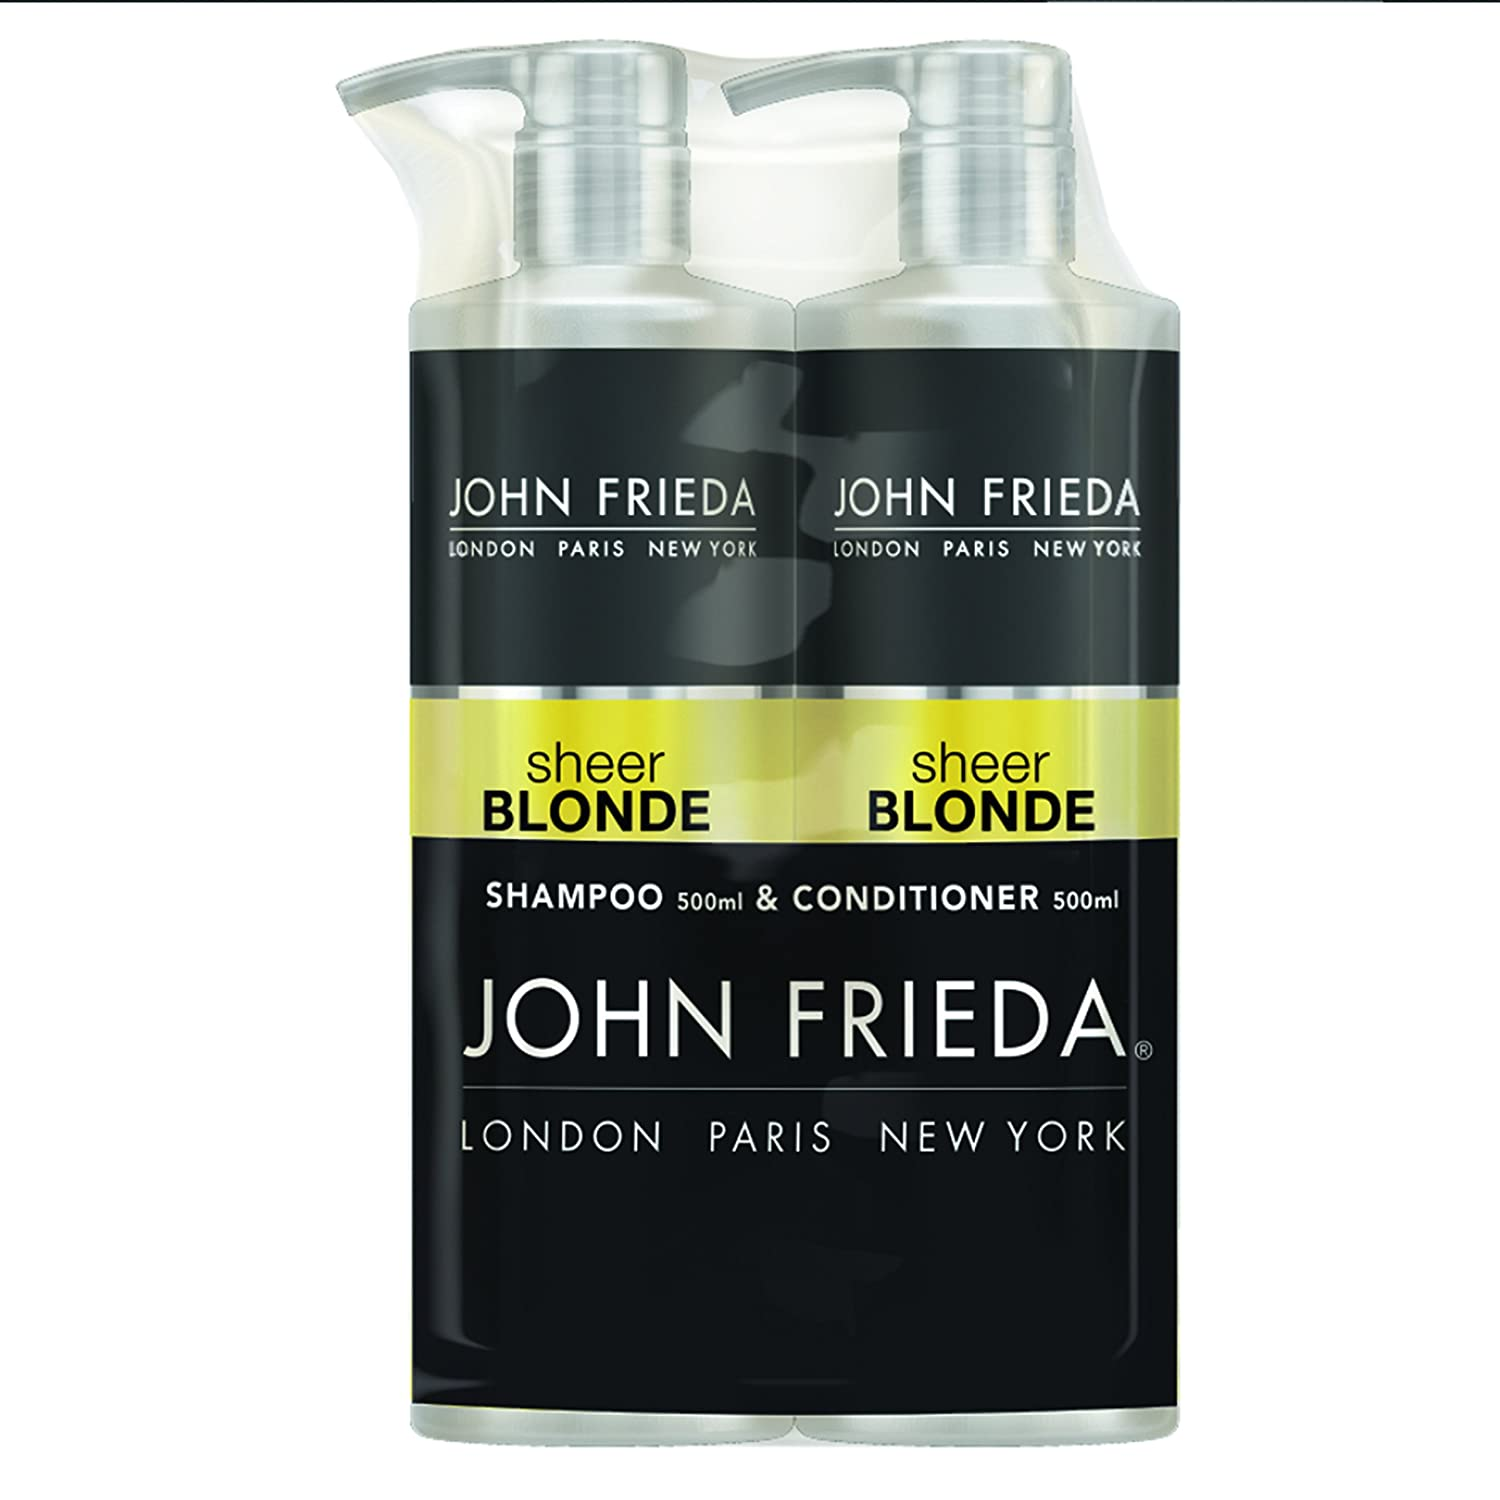 John Frieda Duo Pack Luxurious Volume Touchably Full Shampoo and Conditioner, 2 x 500 ml Kao UK Ltd 2538001